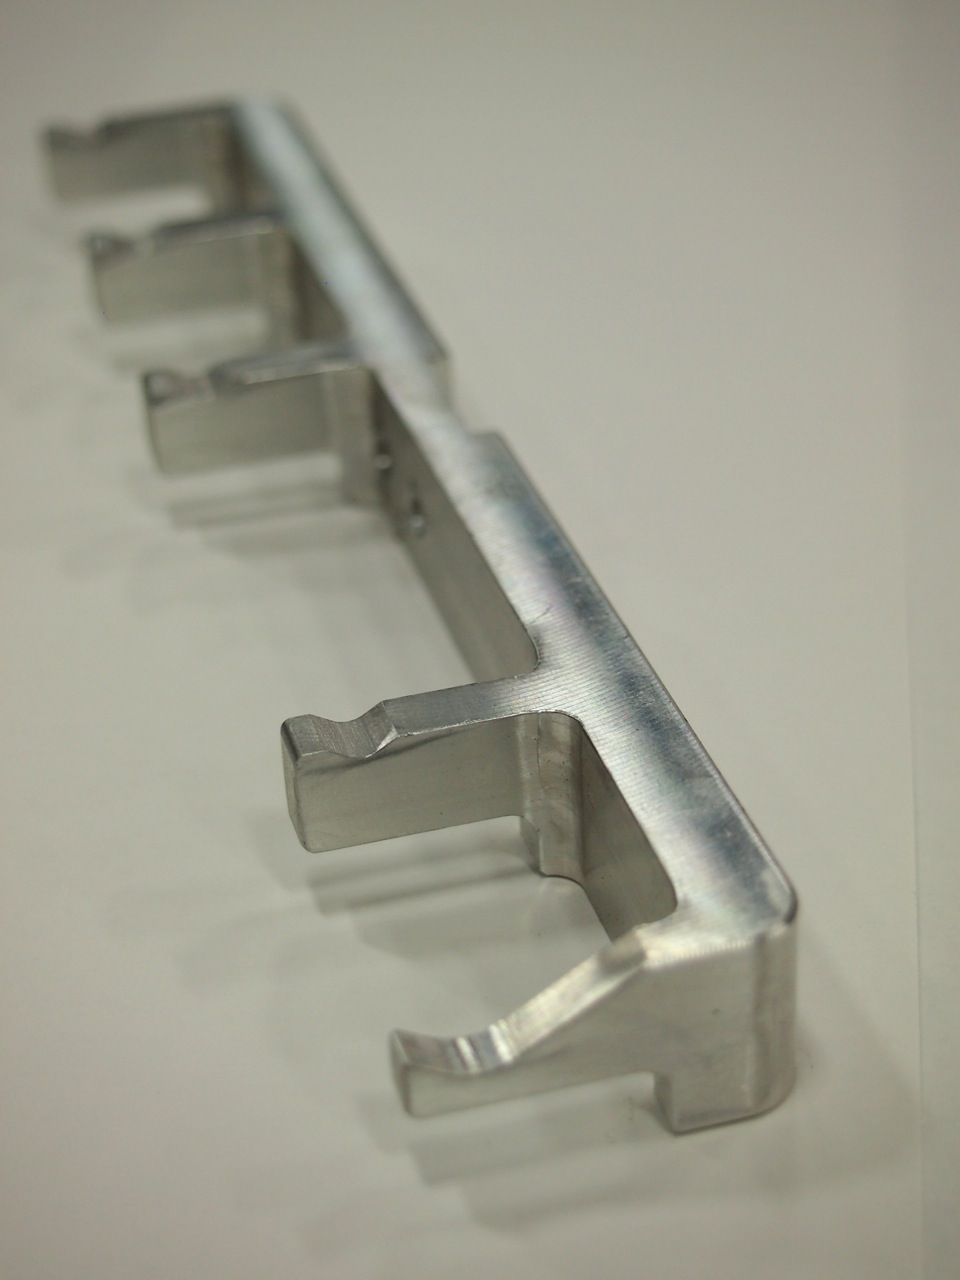 CNC Milled Part - Automation Loading Finger - Material: 6061 Aluminum